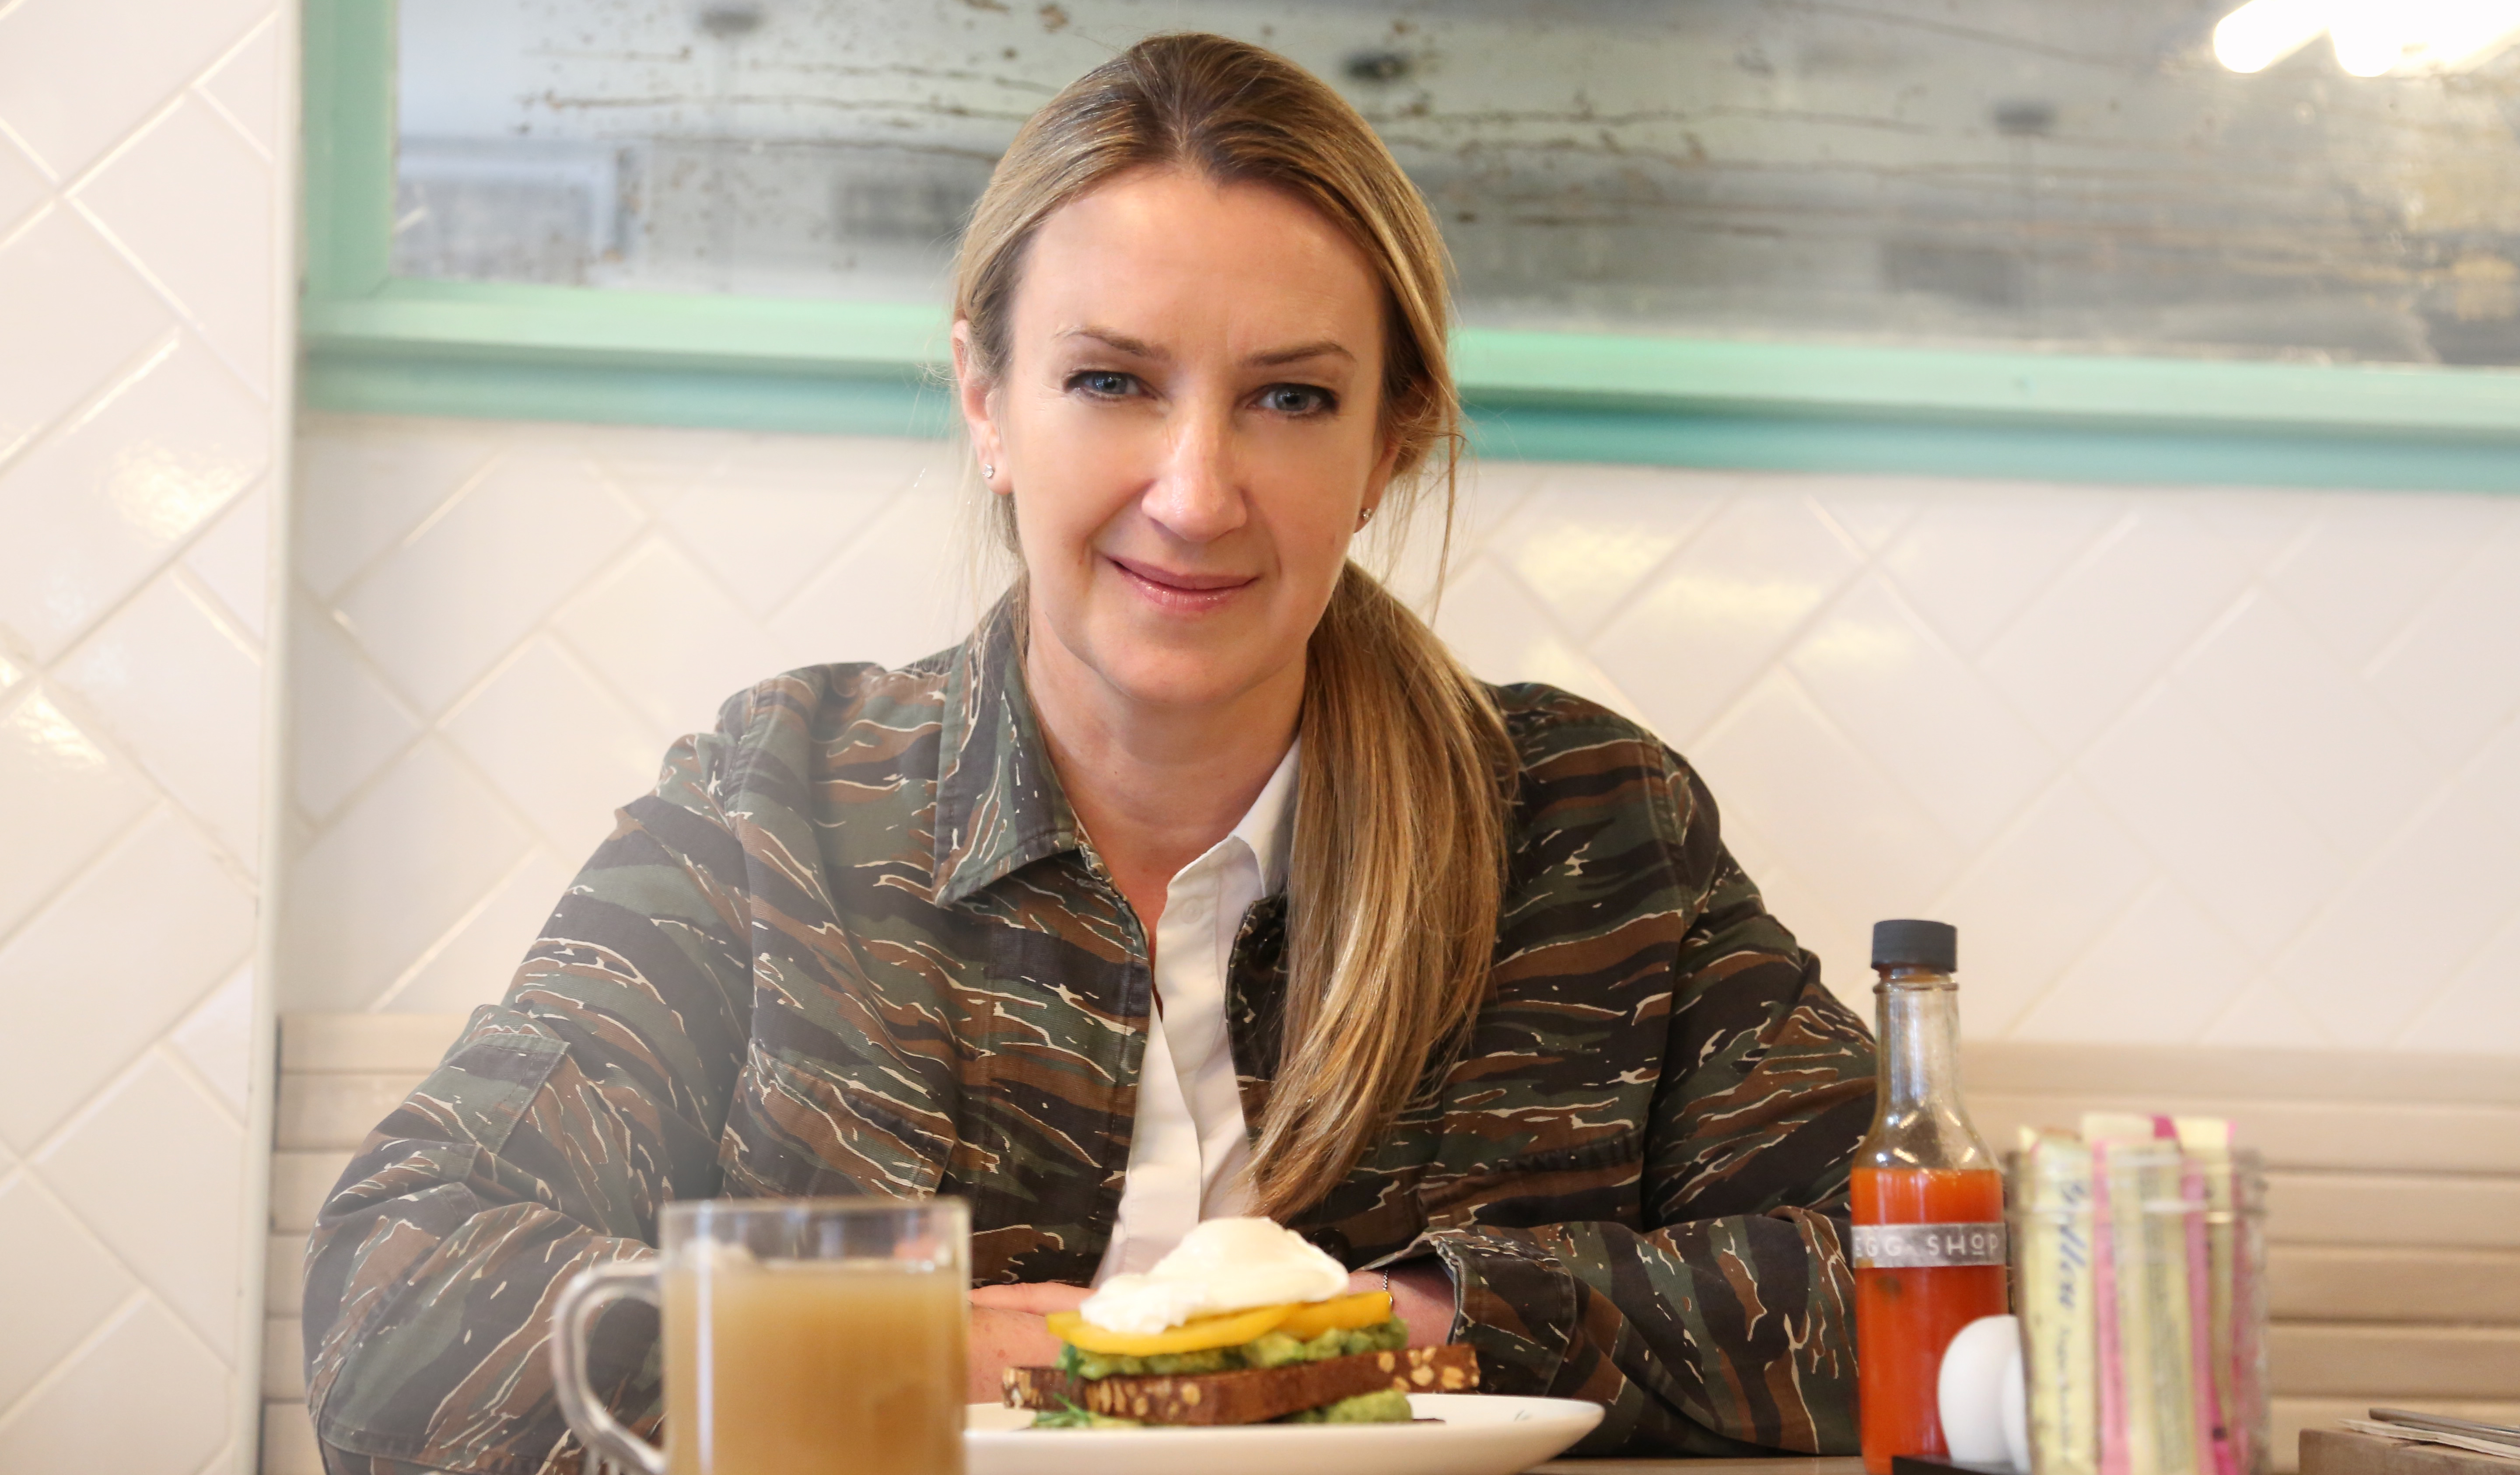 Designer Anya Hindmarch: On English Breakfast & Making Bags Out of Kit Kats